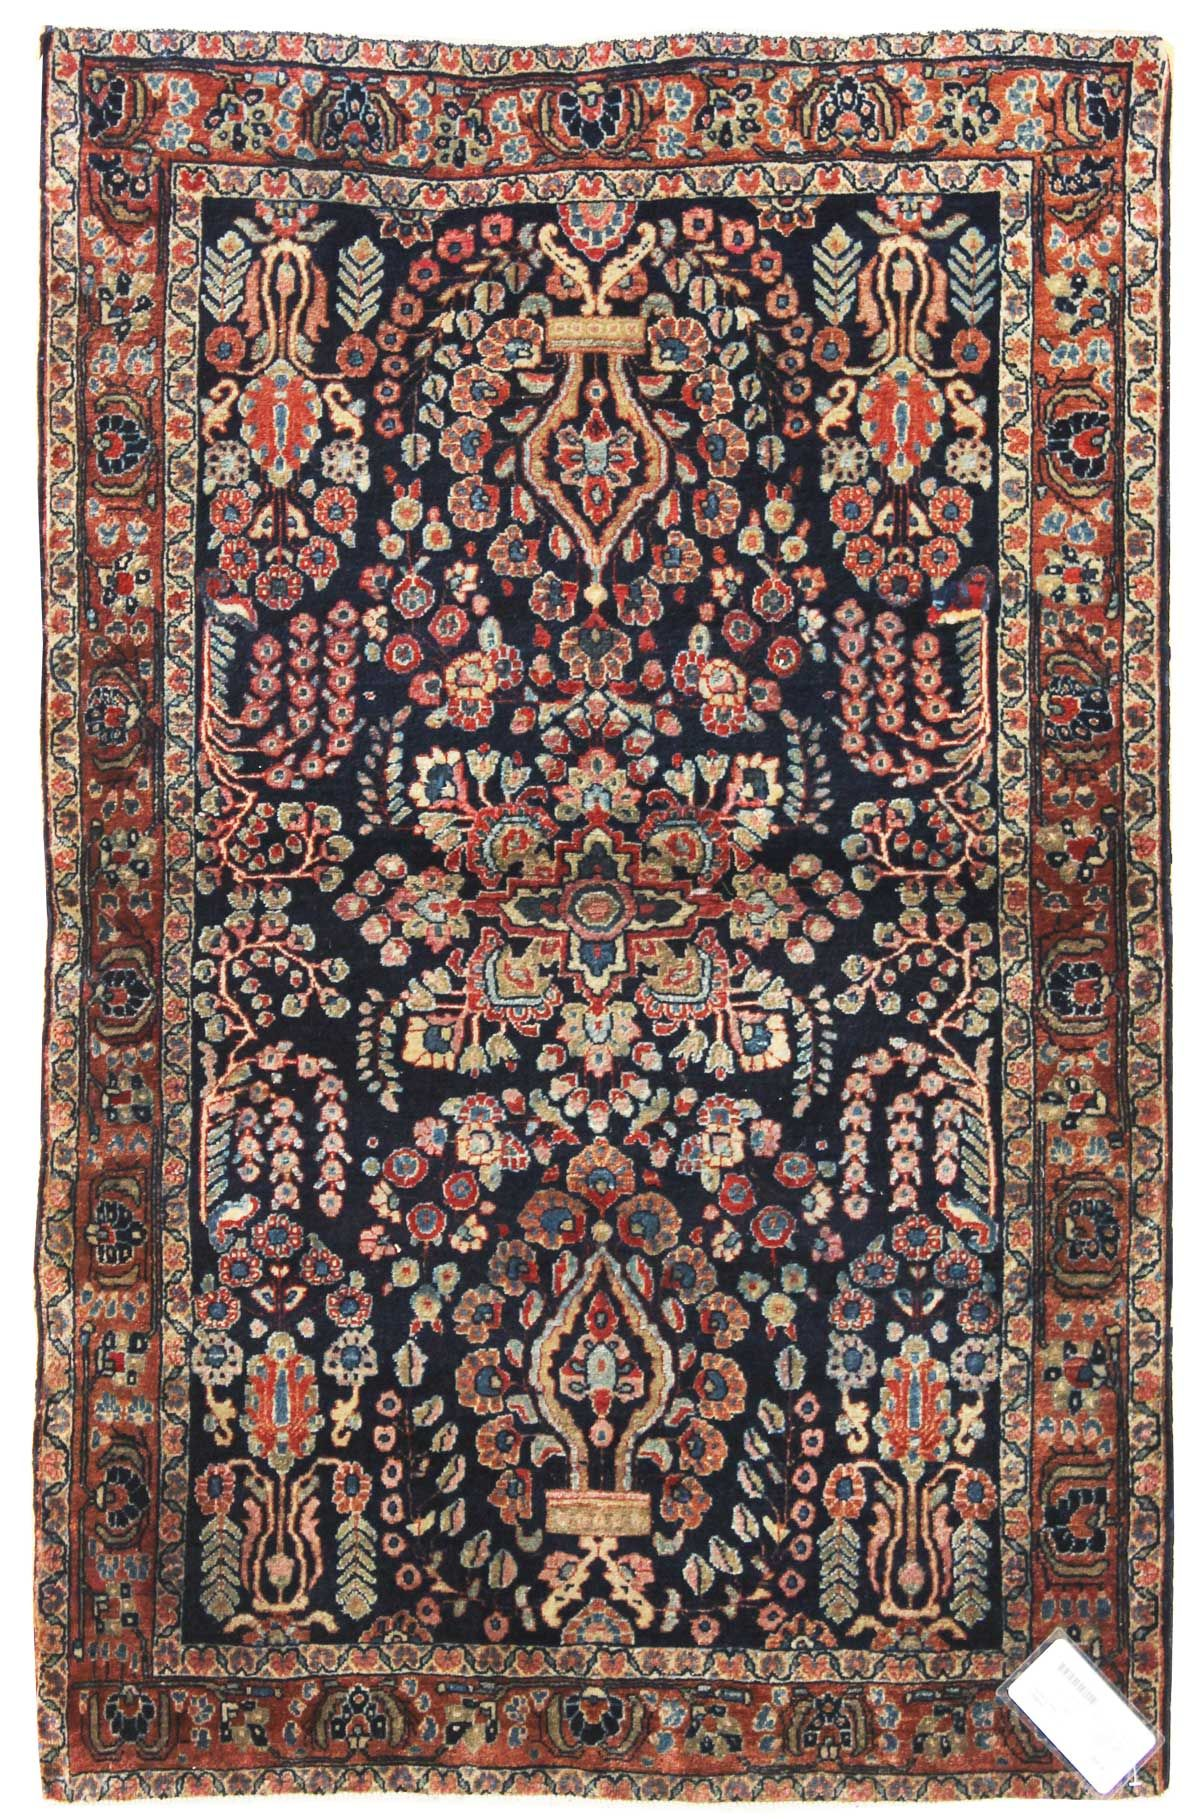 Antique Sarouk Rugs Gallery Antique Sarouk Rug Hand Knotted In Persia Size 3 Feet 4 Inch Es X 4 Feet 10 Inch Es Rugs On Carpet Rugs Oriental Carpets